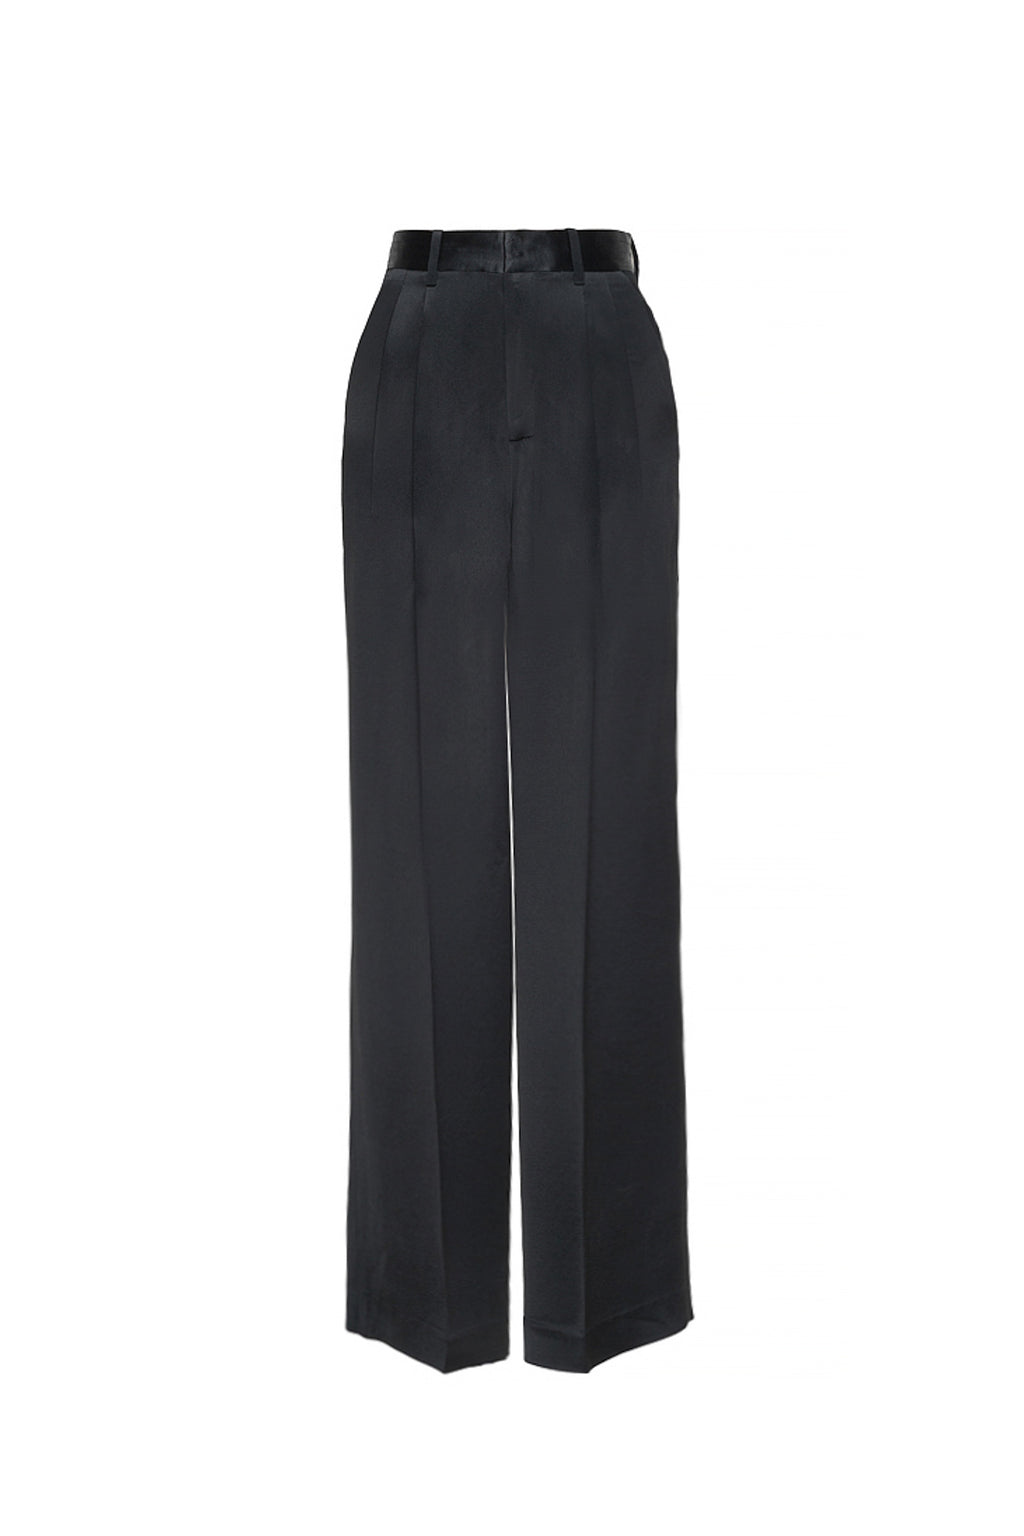 Acetate Wide Leg Trousers